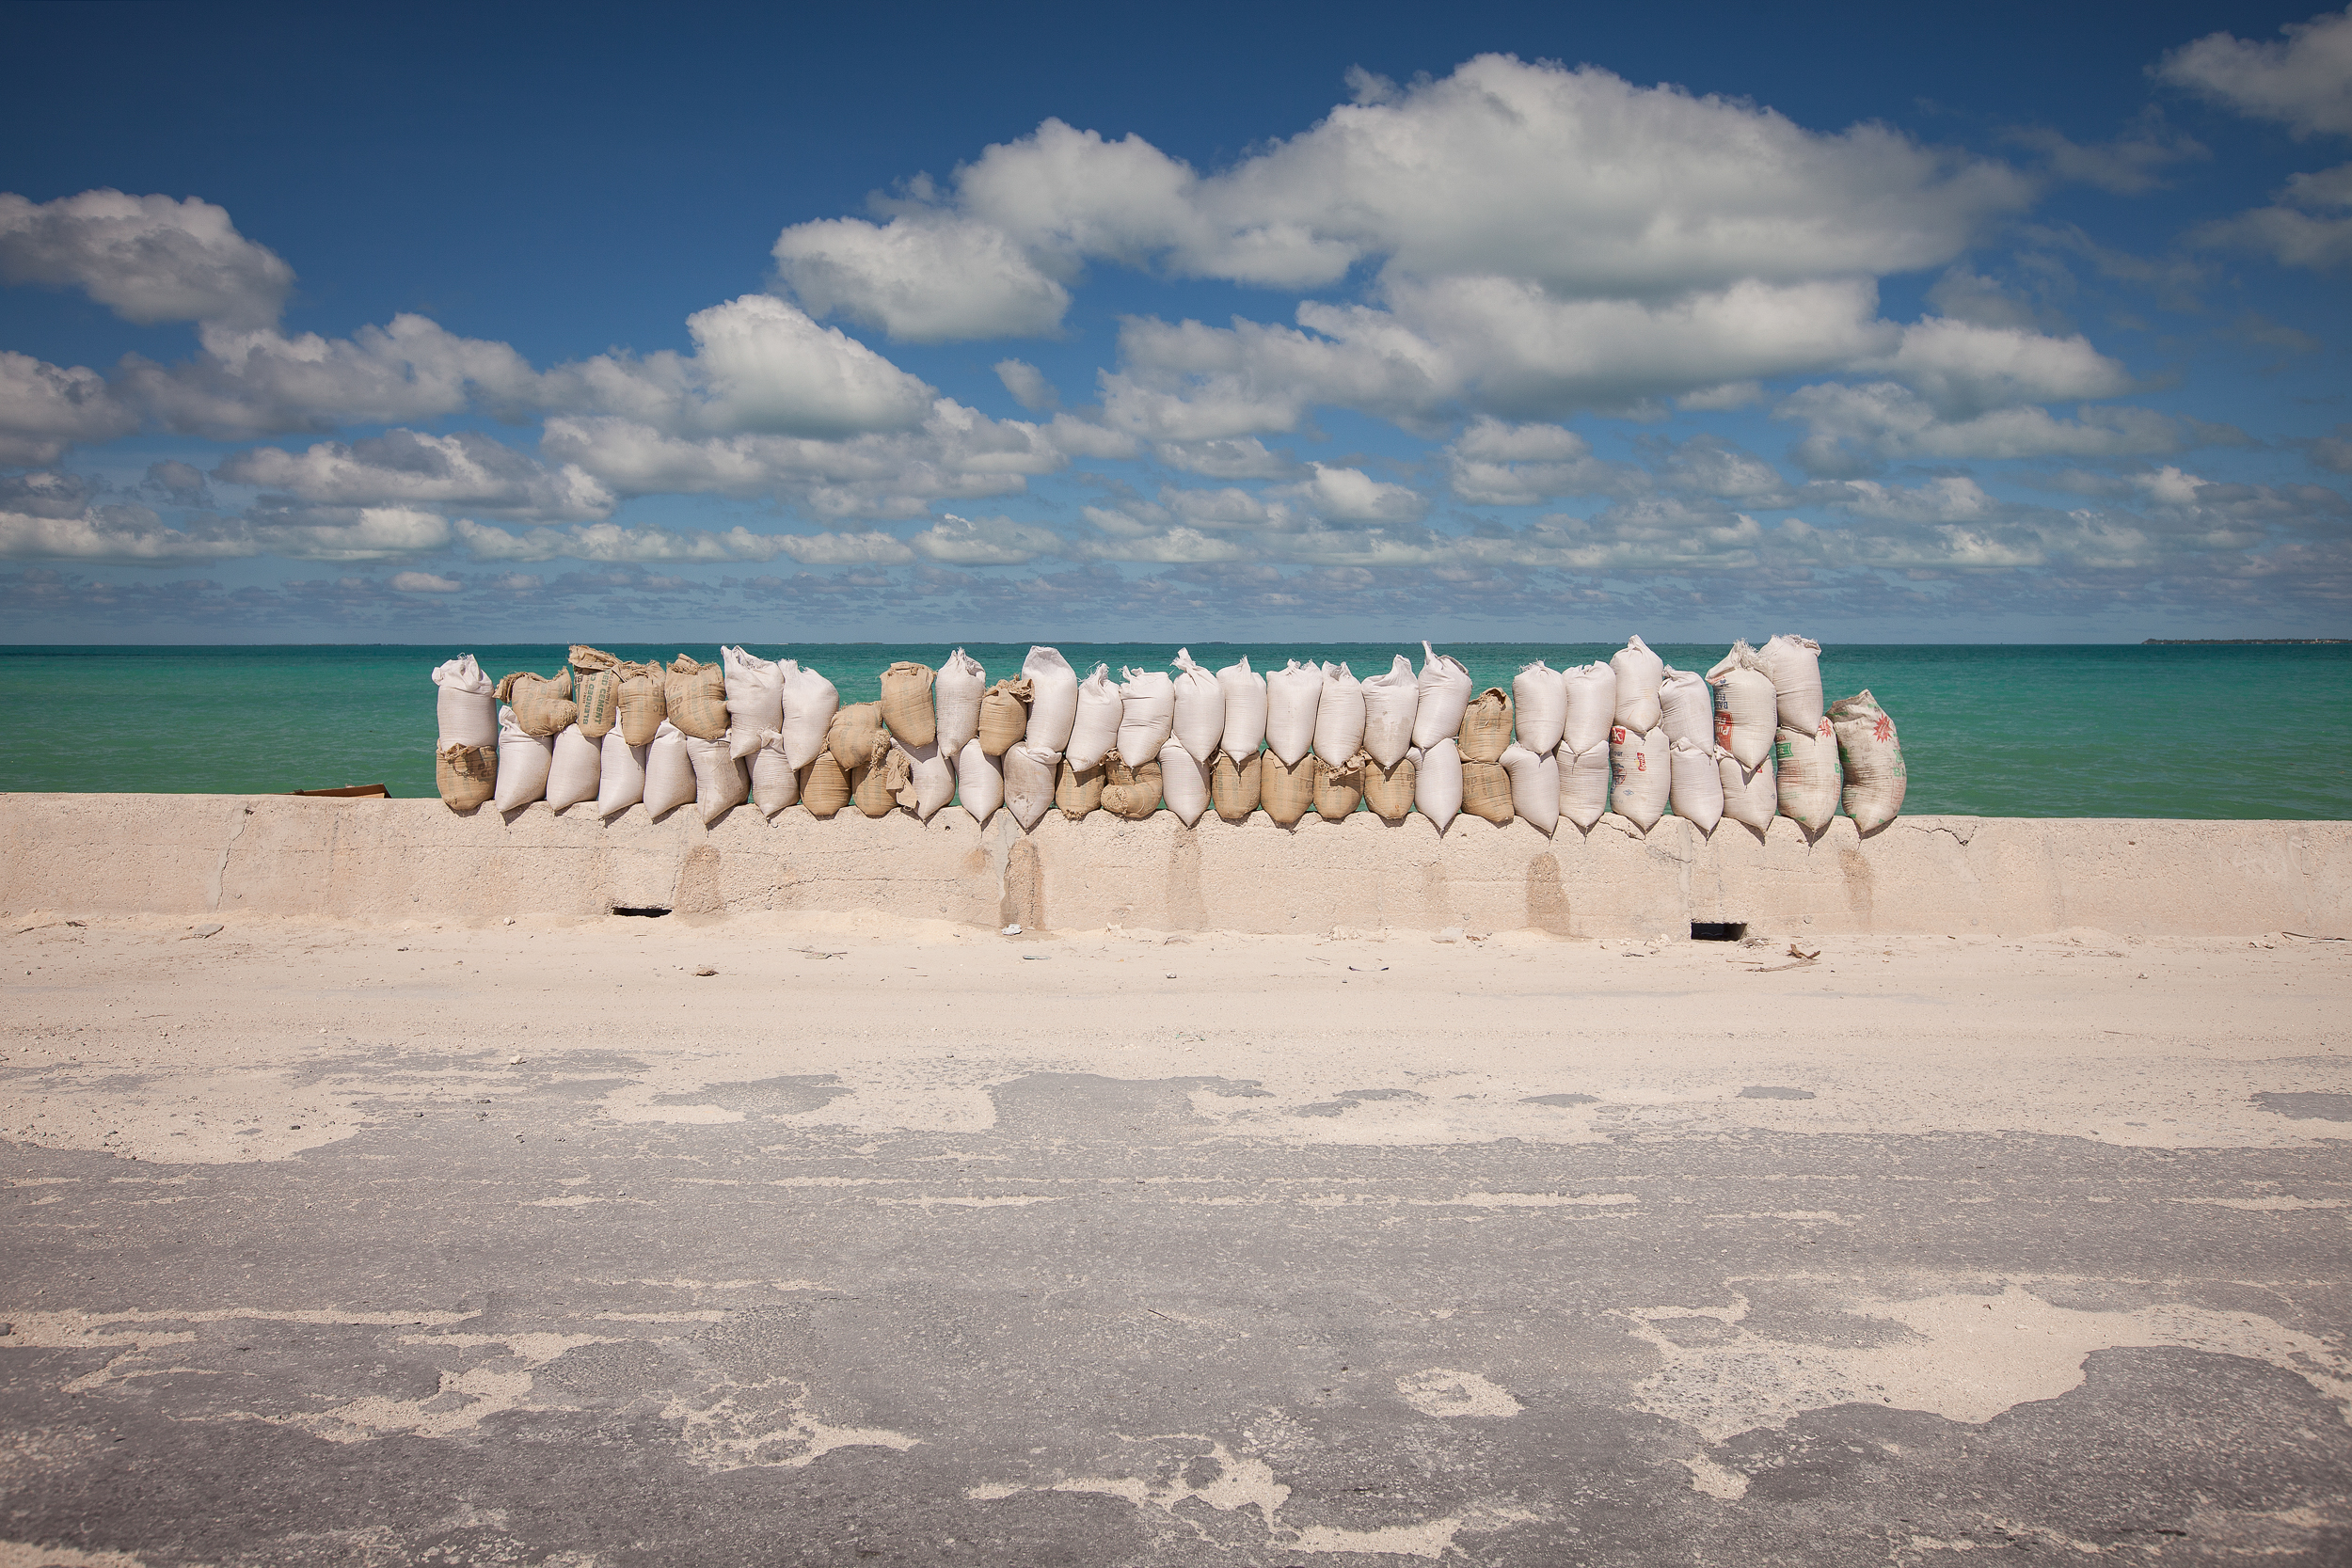 Sandbags pile up on the Betio causeway. There is only one road going from one end of Tarawa to the other, making it a crucial piece of infrastructure. The thin causeways linking bits of land together are particularly vulnerable to storm surges and waves, and require regular maintenance.